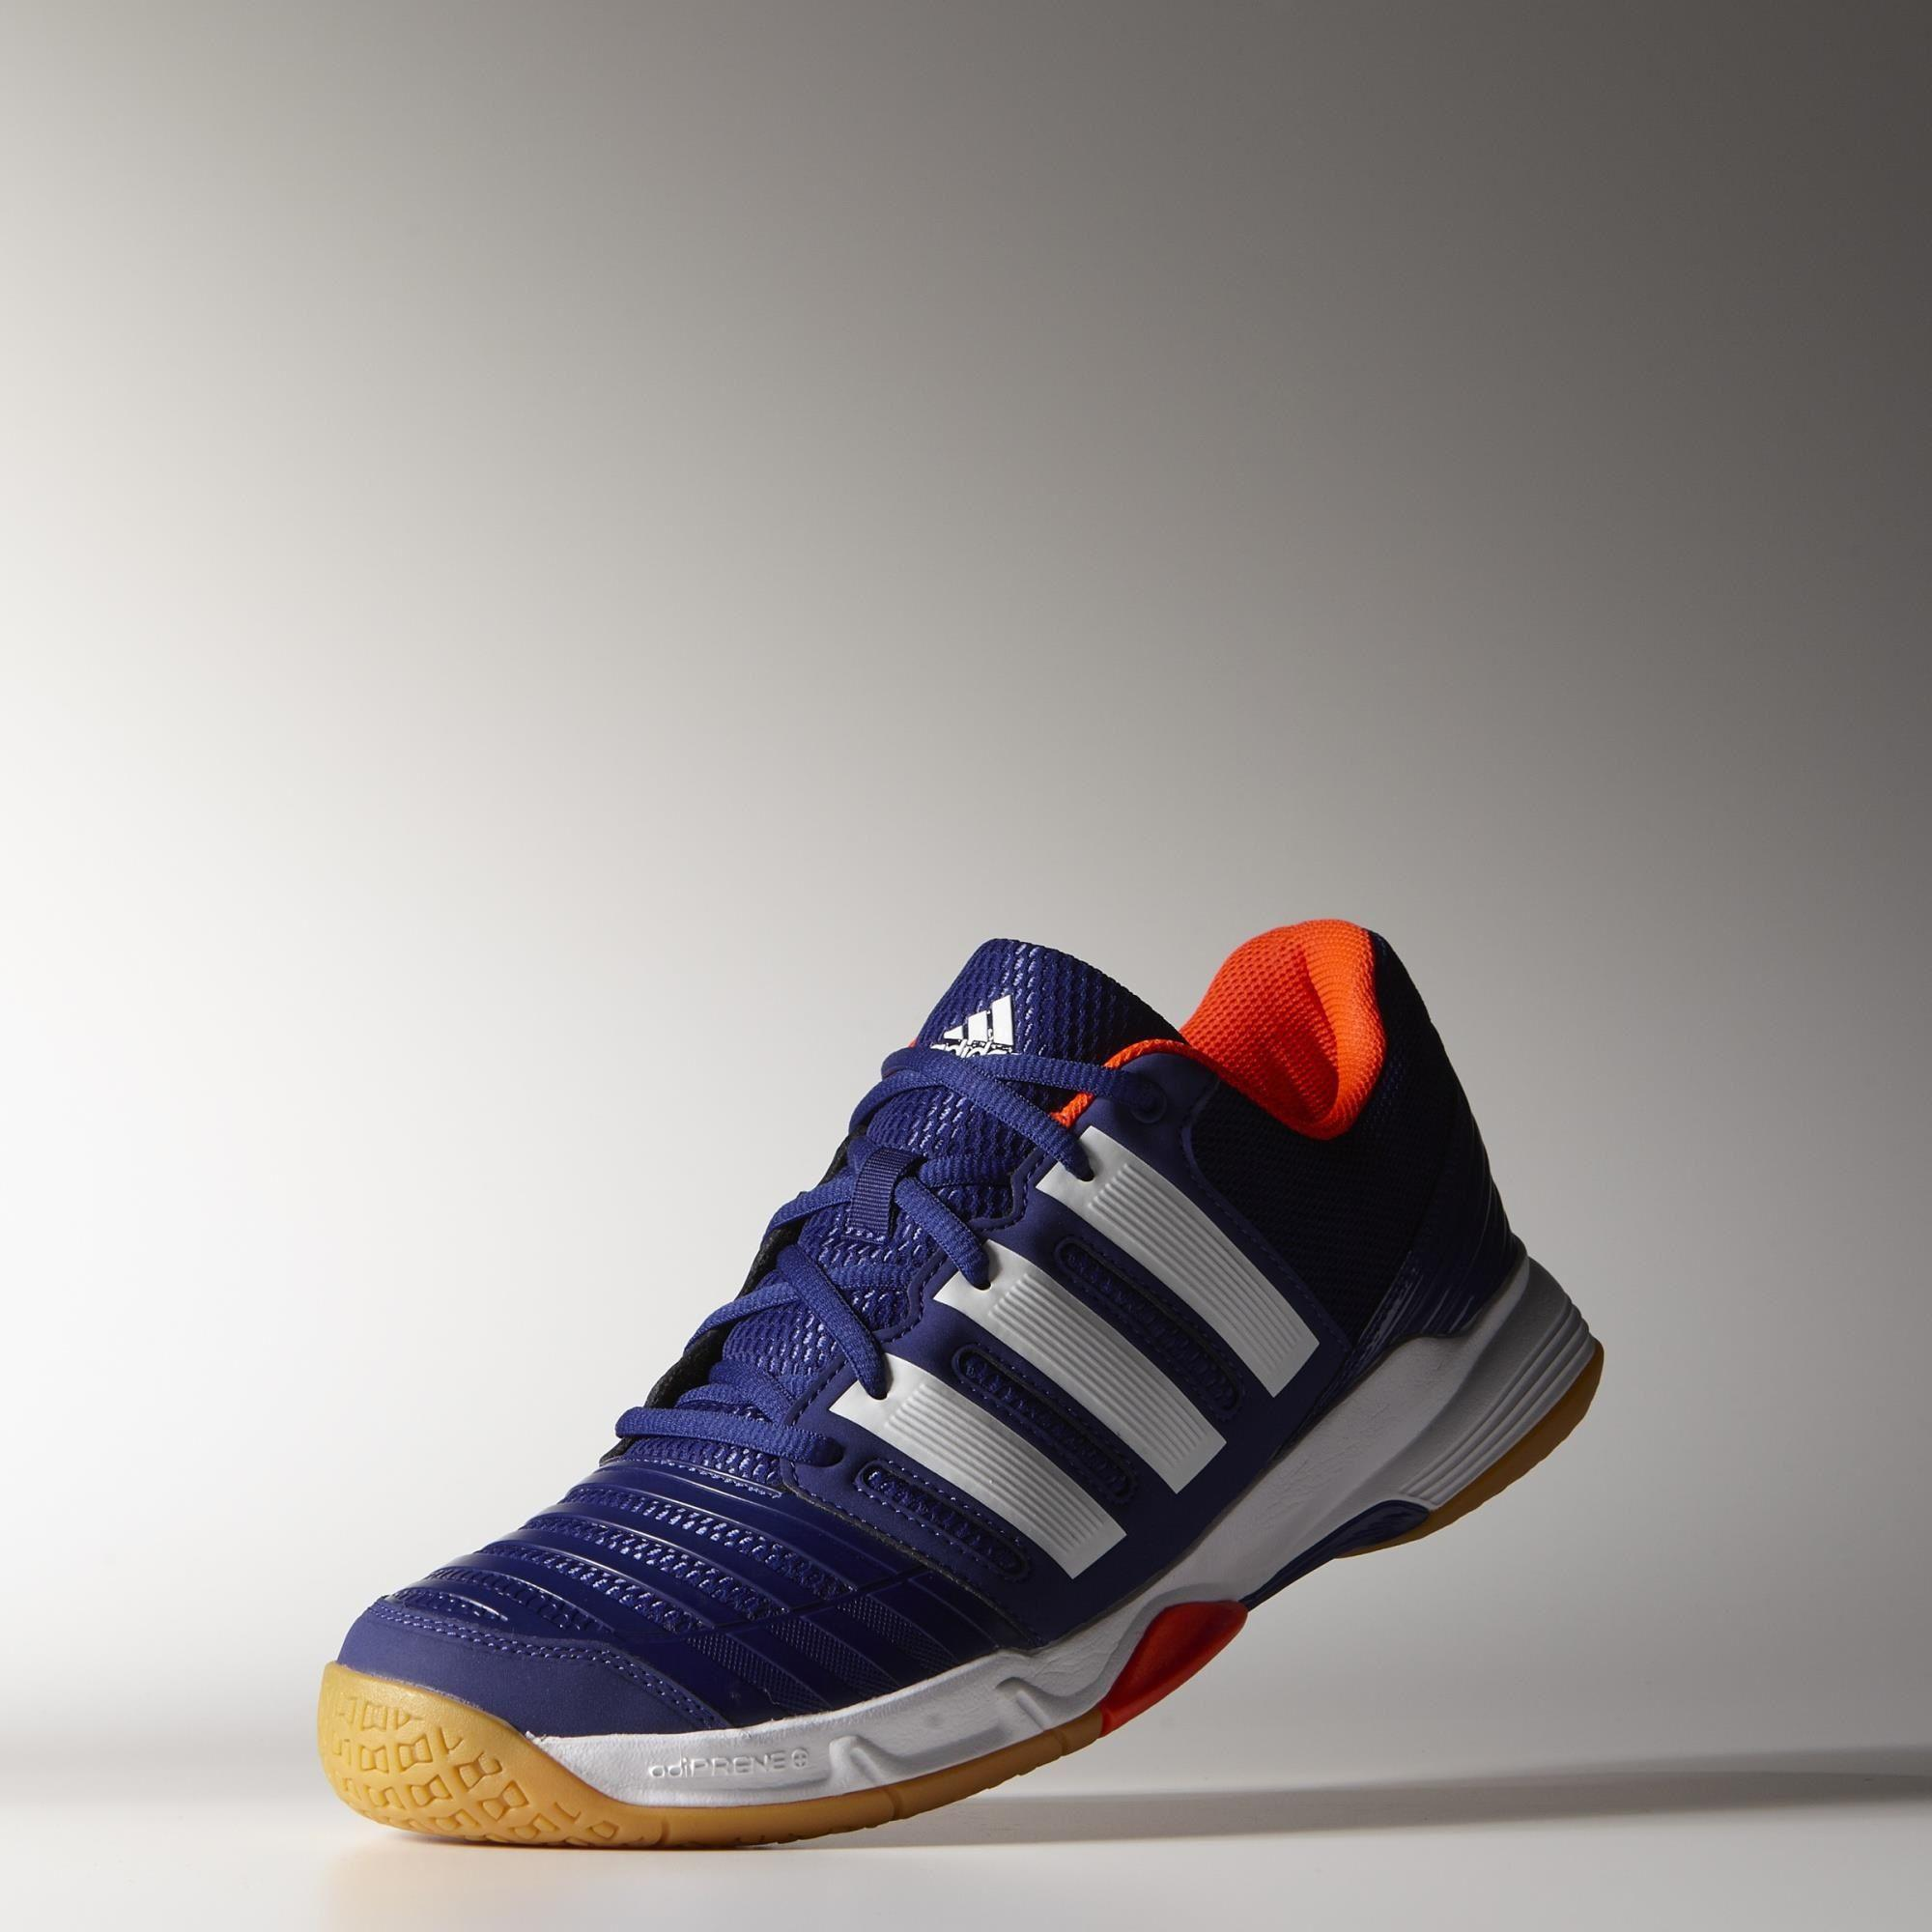 b07b8223b017 Adidas Mens Court Stabil 11 Indoor Shoes - Amazon Purple White ...